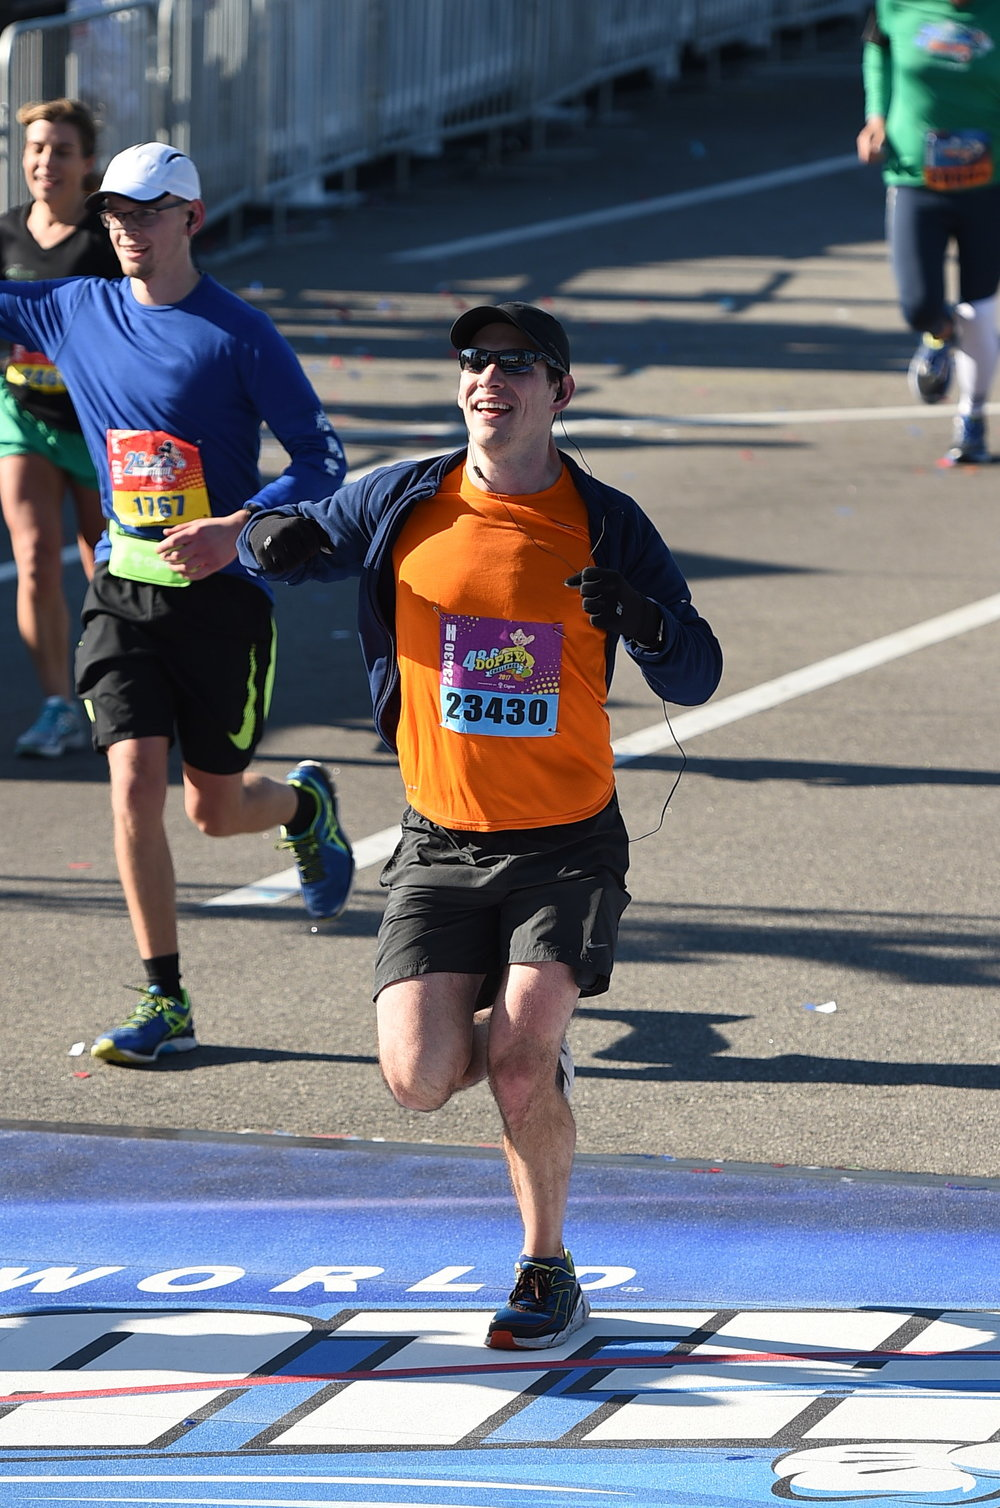 Dr. Scott wasn't able to run > 40miles in one weekend without training his body over a period of time.